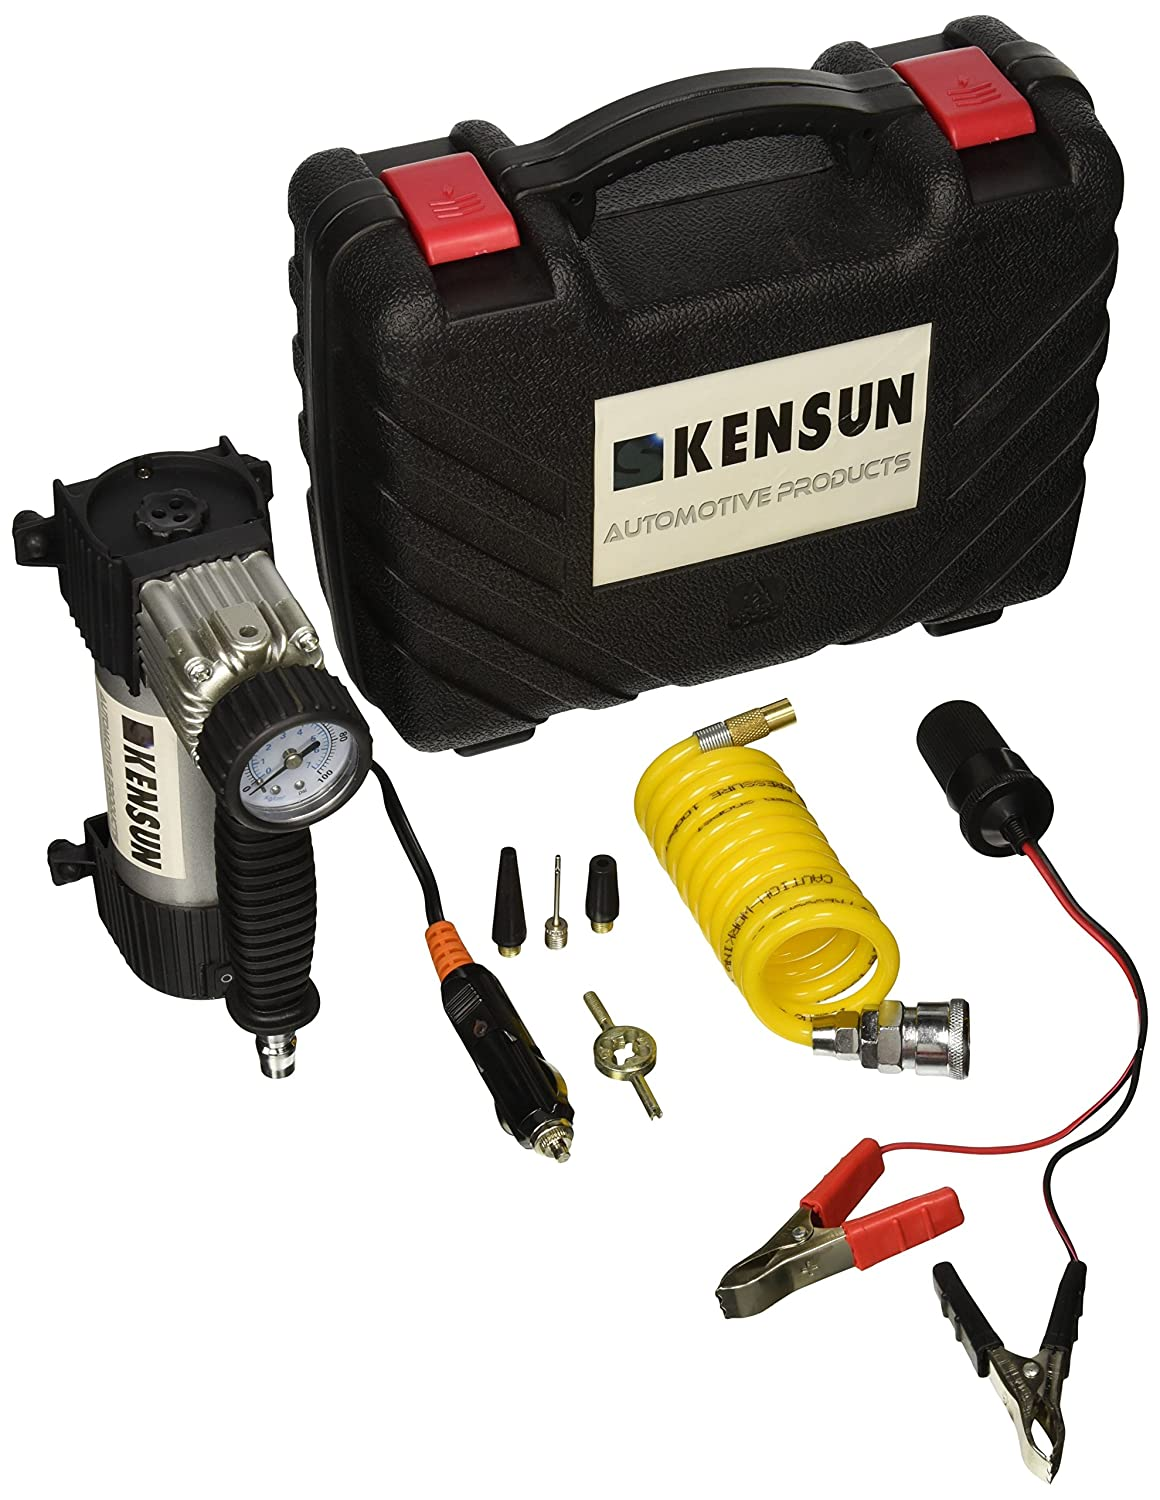 Kensun Portable Travel Multi-Use Air Pump Compressor/Inflator Kit